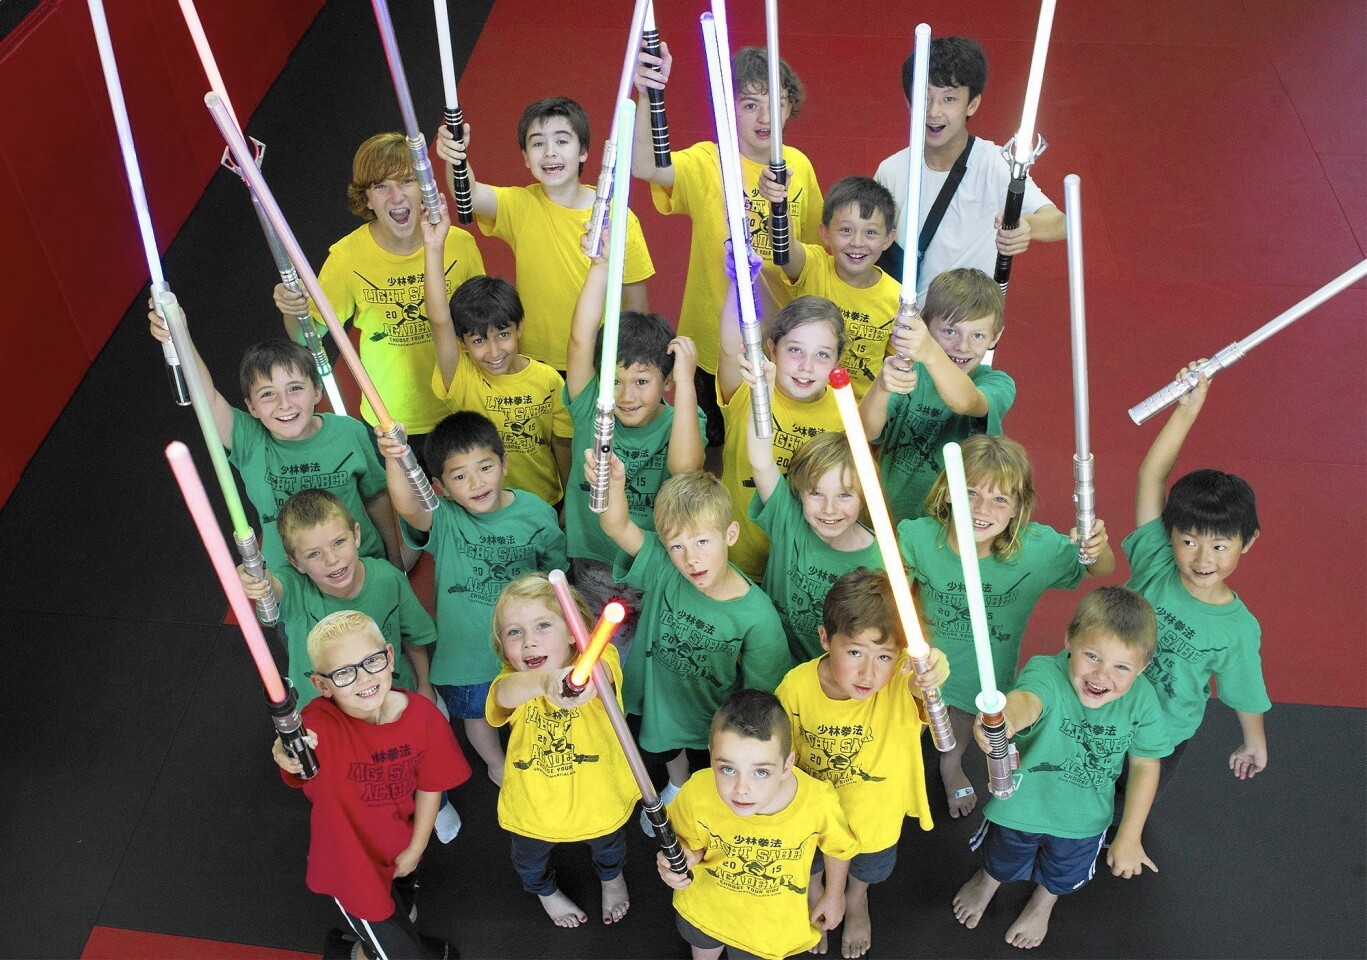 This group of 21 children, ages 5-13, took part in United Studios of Self Defense's five-day Light Saber Academy, held from July 20-24.